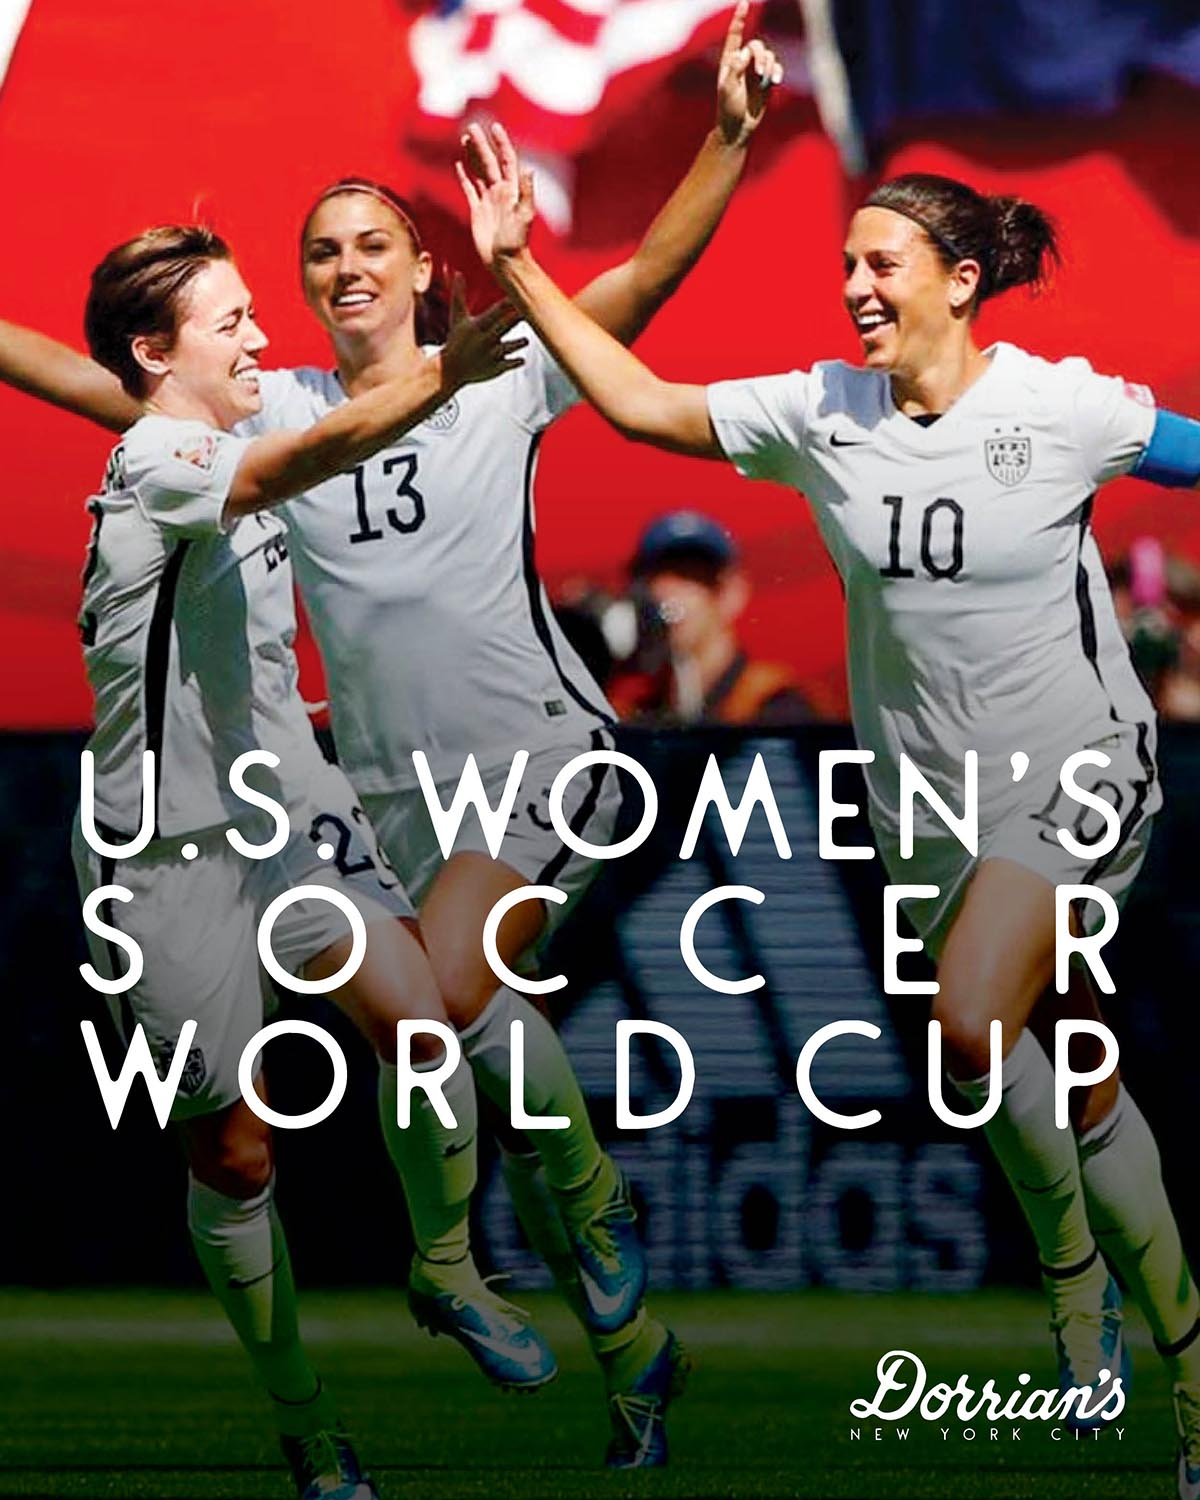 drh_nyc-2019-insta-events-sports-us-womens-soccer-world-cup-1500.jpg